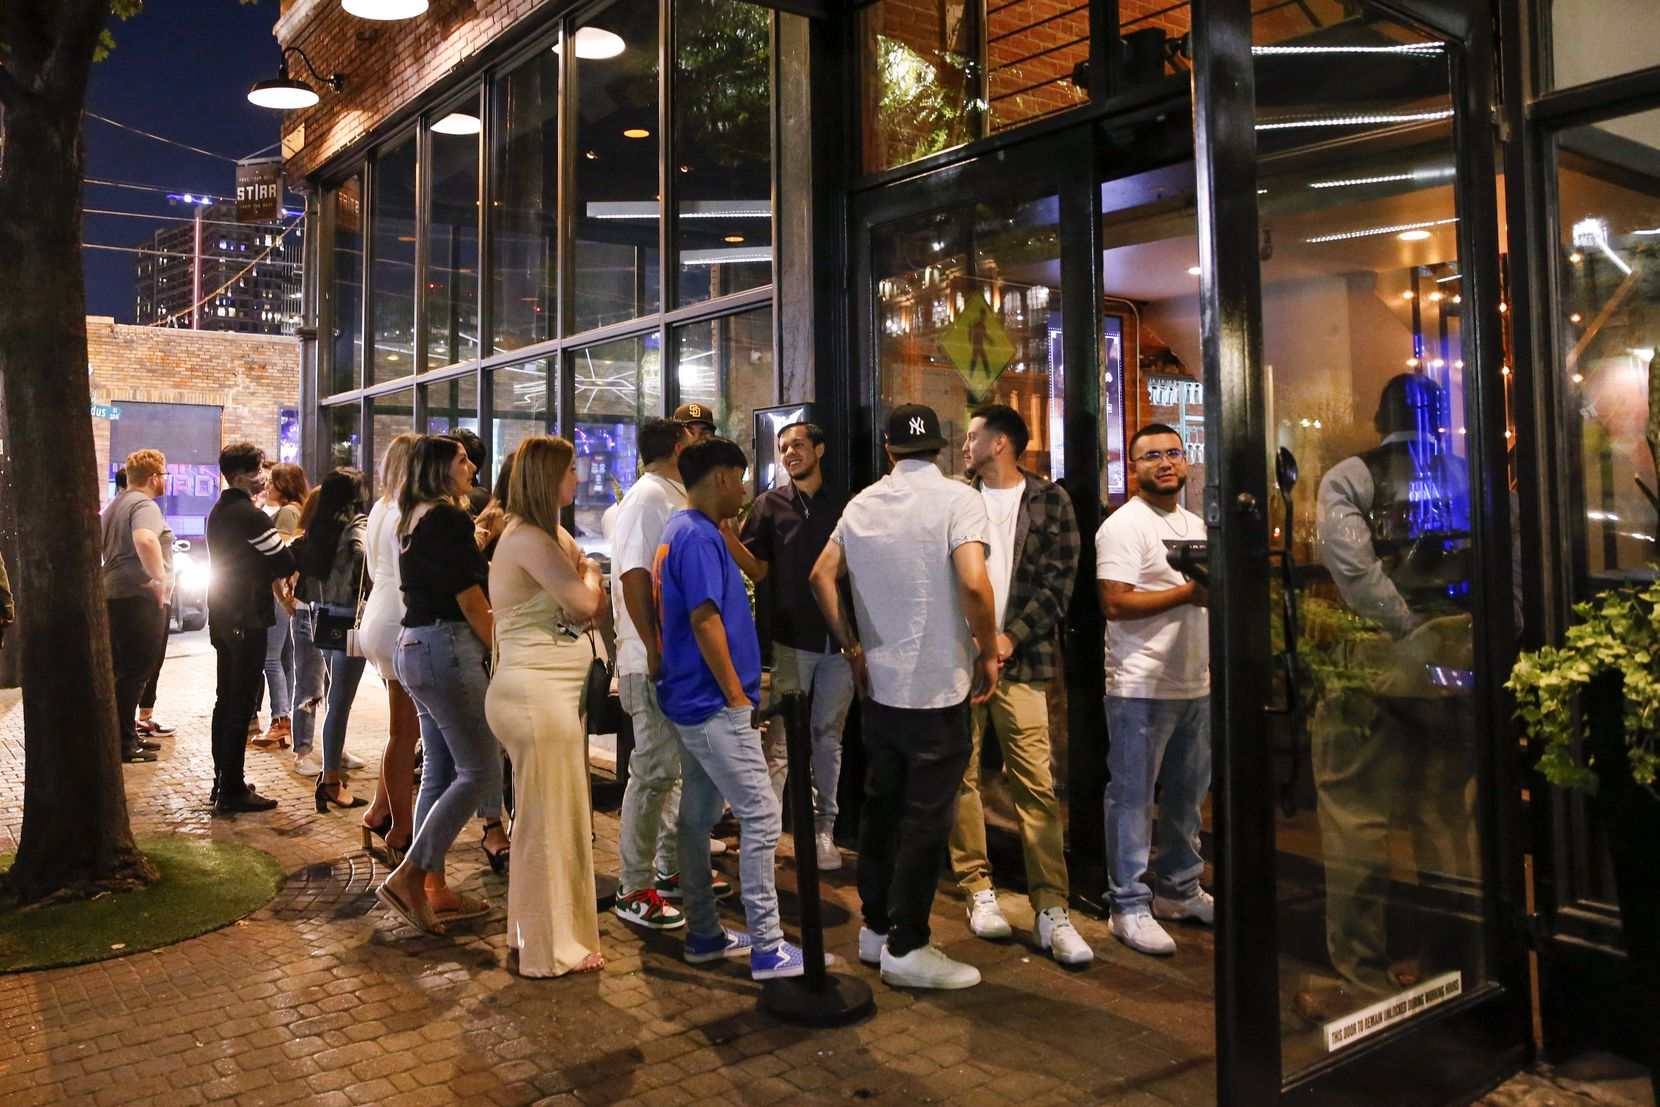 People wait outside to enter Stirr, a bar and restaurant on Main Street in in Deep Ellum.